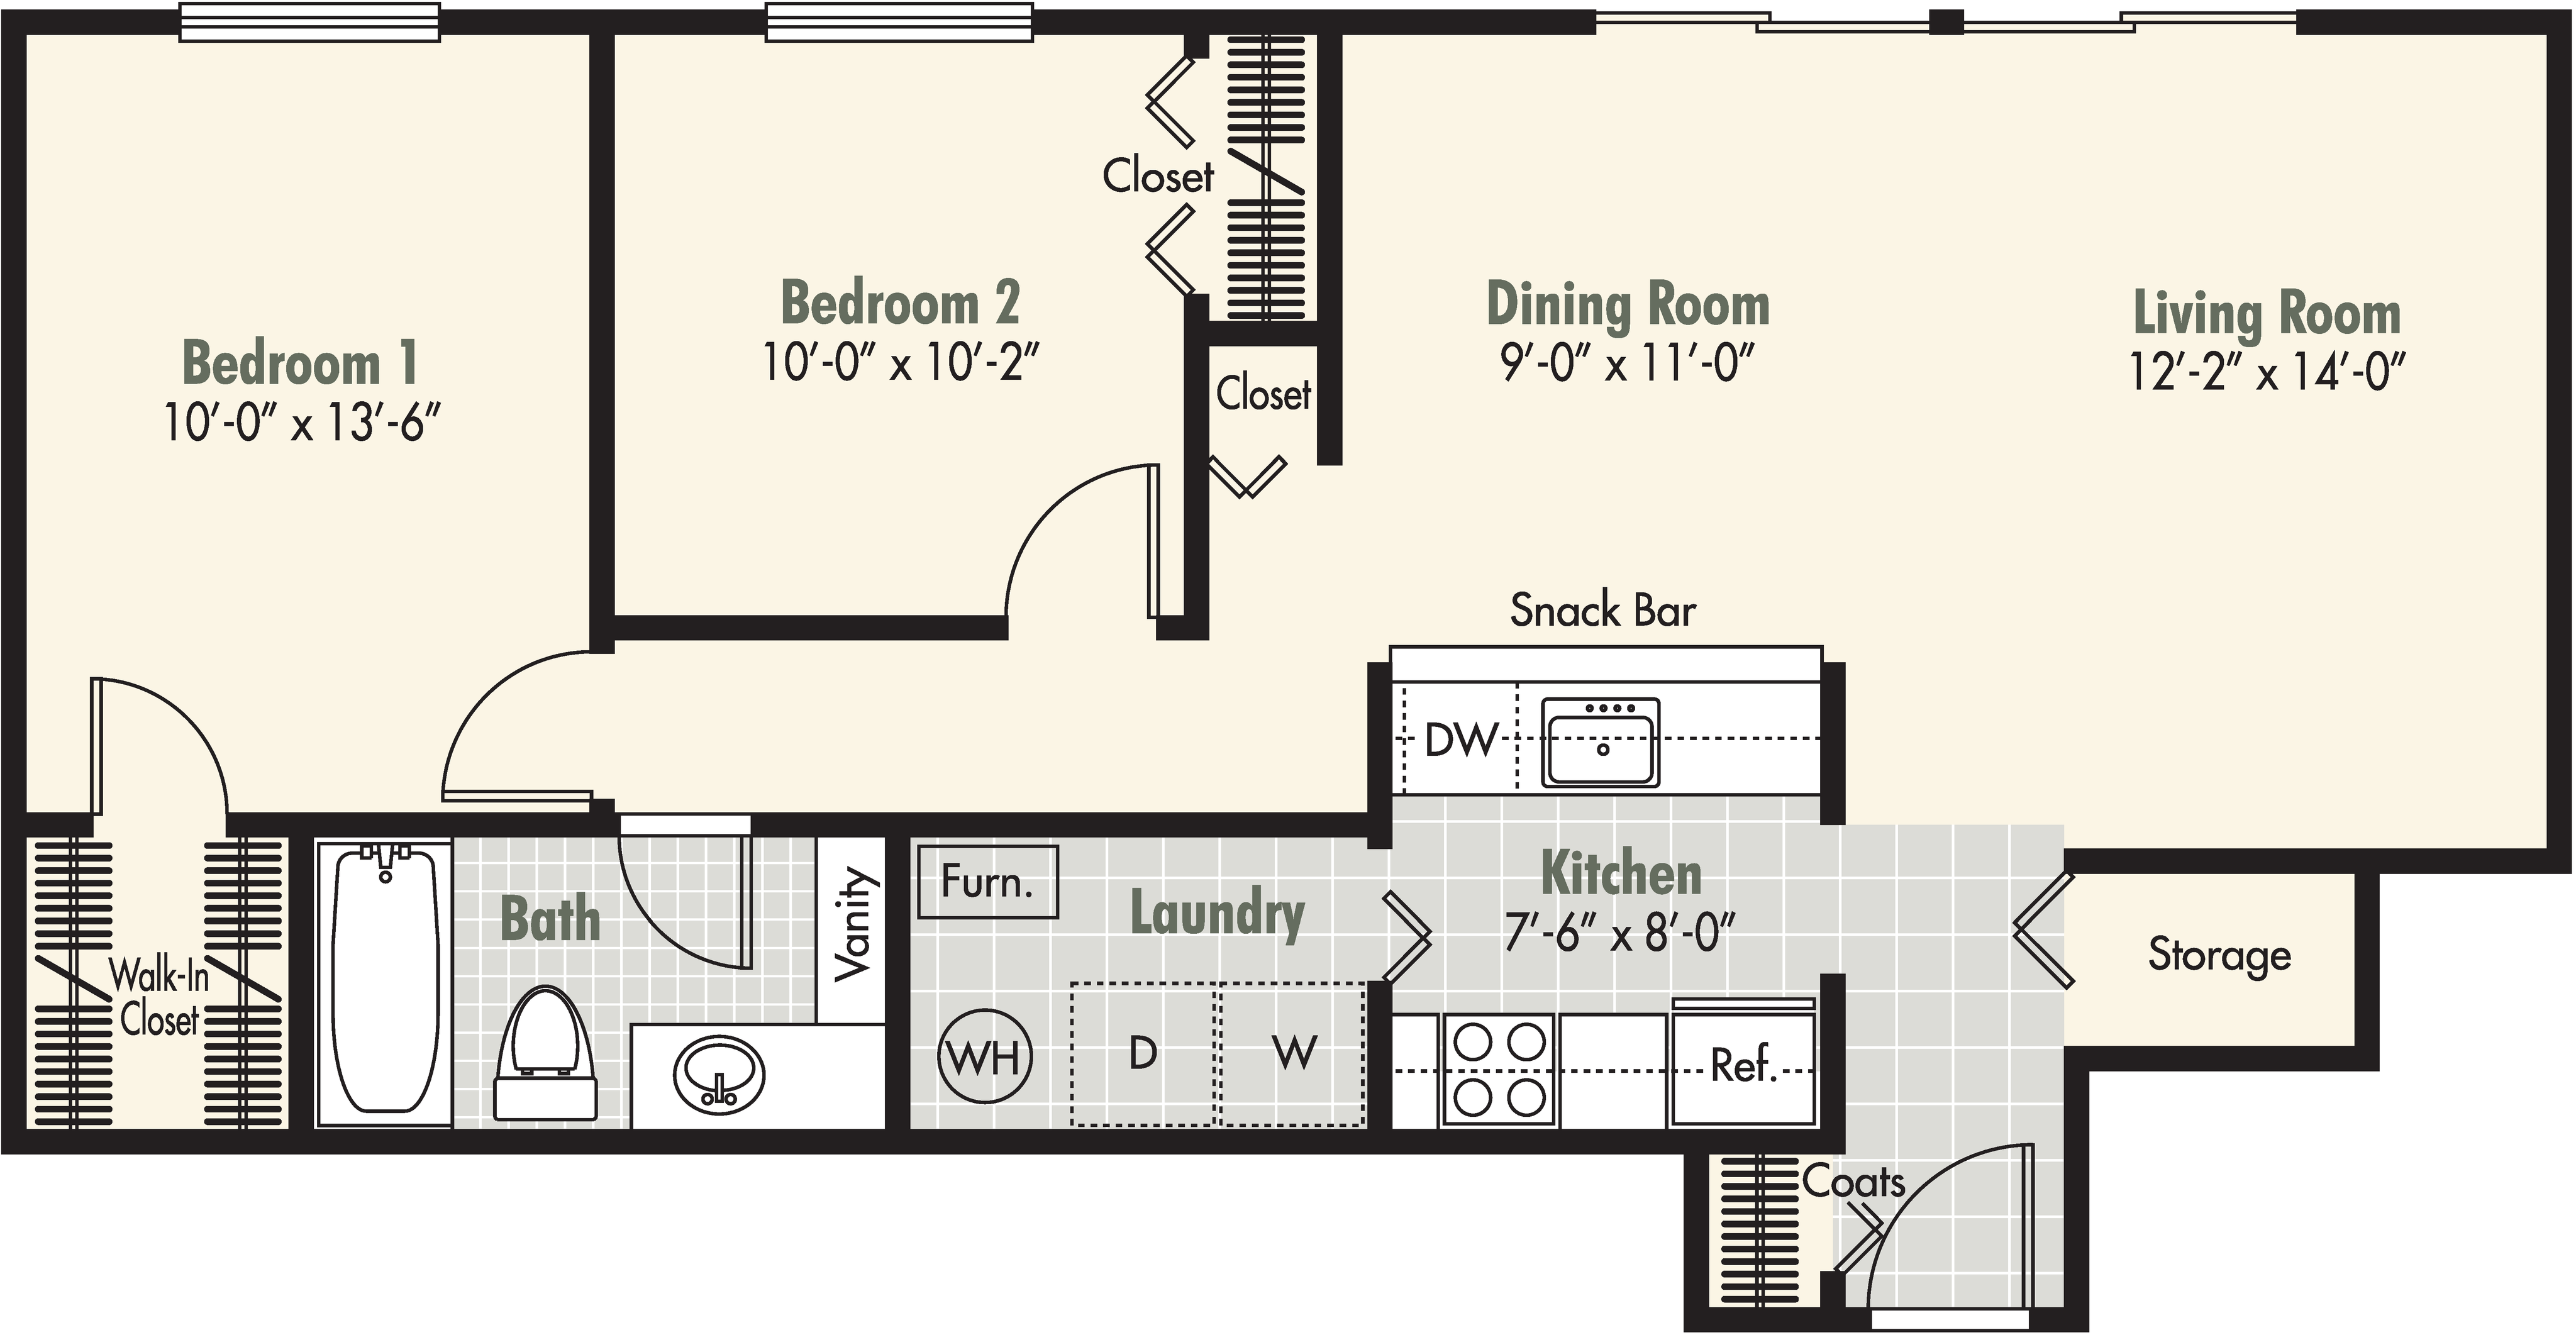 2 Bedroom - 1 Bath